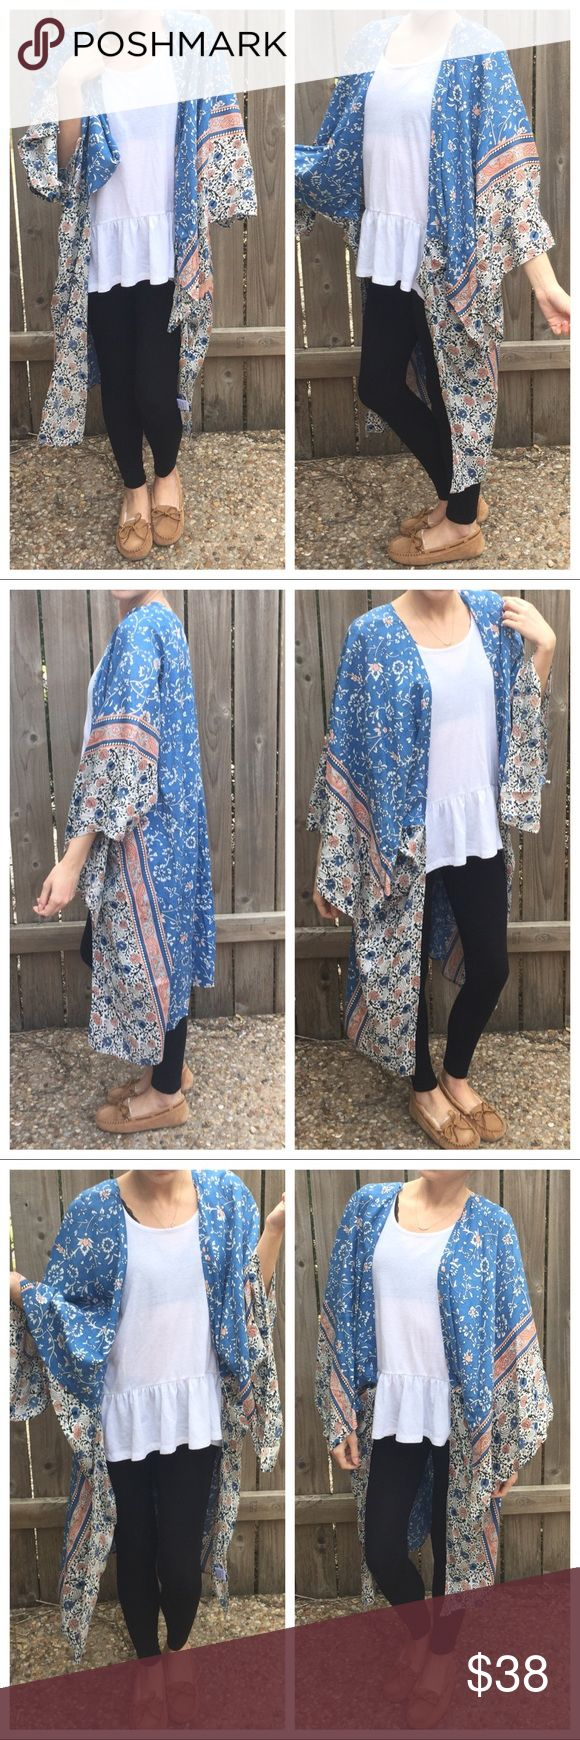 """▫️Gorgeous Boho Patterned Long Kimono One of my fave pieces! Gorgeous boho patterned kimono. This just screams comfy day in with Netflix!! Perfect to throw over a tee and leggings! Or dress it up with some skinnies and heels for date night or girls night! Very nicely made with wide sleeves. So many little details that make this one of a kind! Oversized fit. One Size fits All. I am 5'4"""" for reference! Rayon. Length:  40""""  *Bundle 2+ items for discount. Tops"""